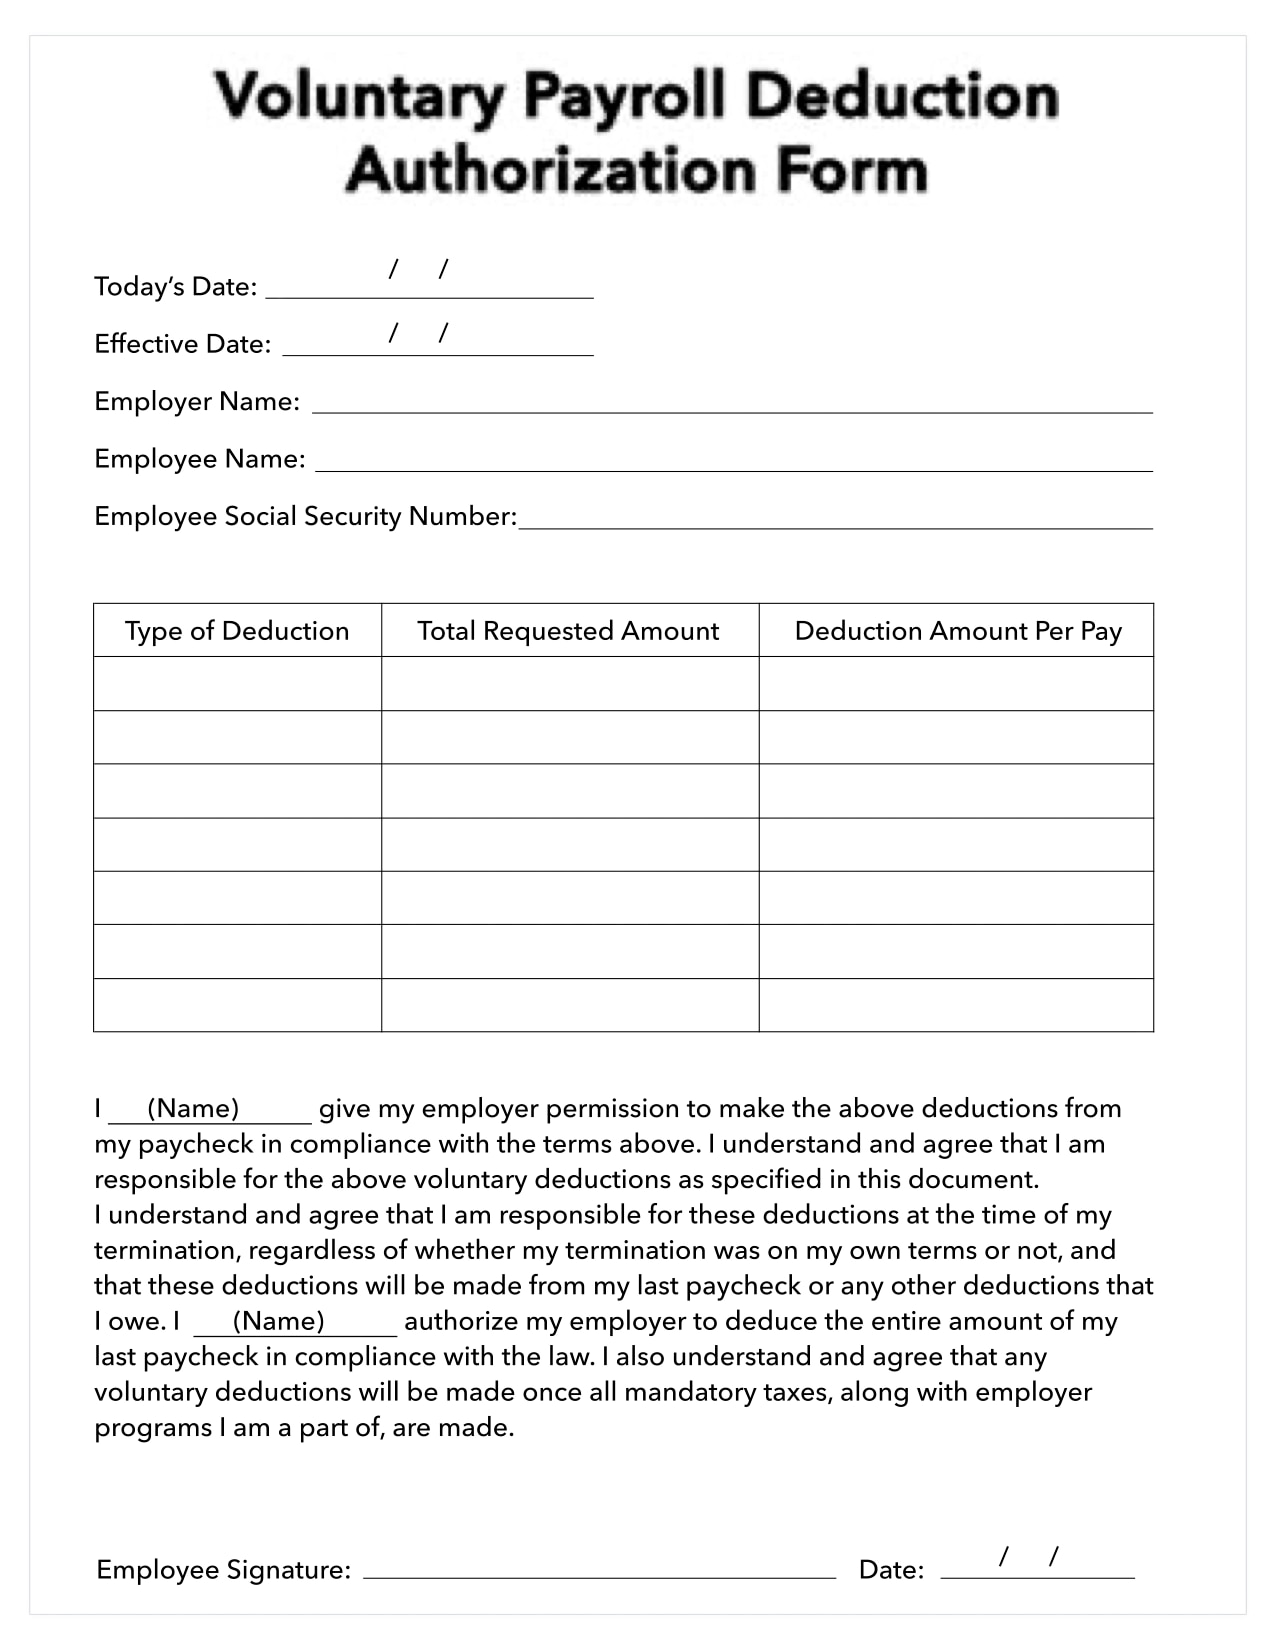 Payroll deduction authorization form example